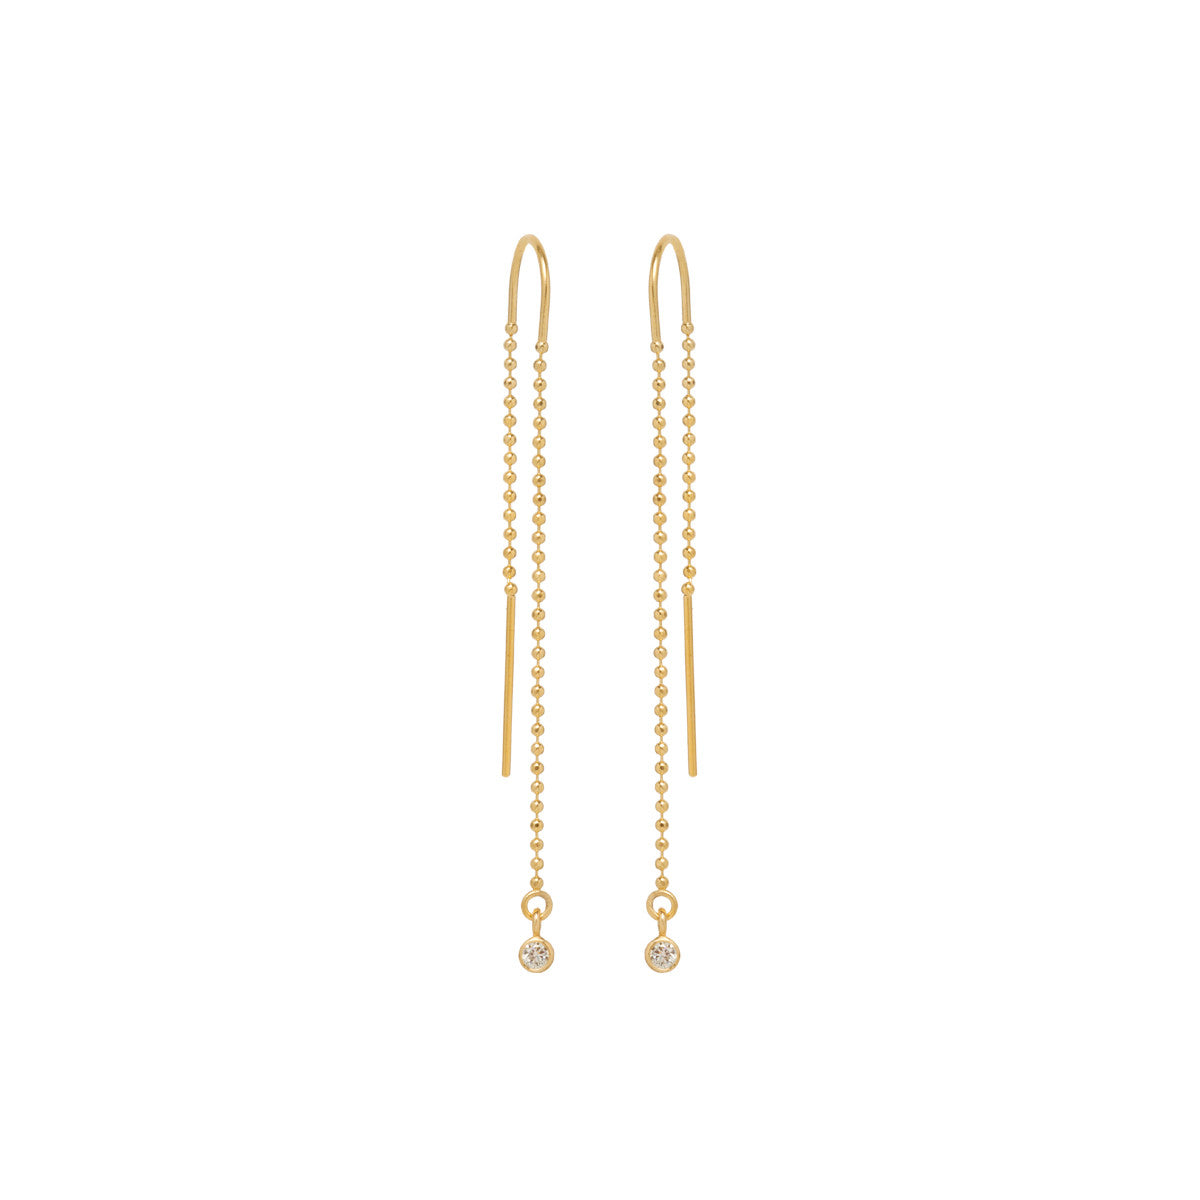 Zoë Chicco 14kt Yellow Gold Bezel Set White Diamond Bead Chain Threader Earrings